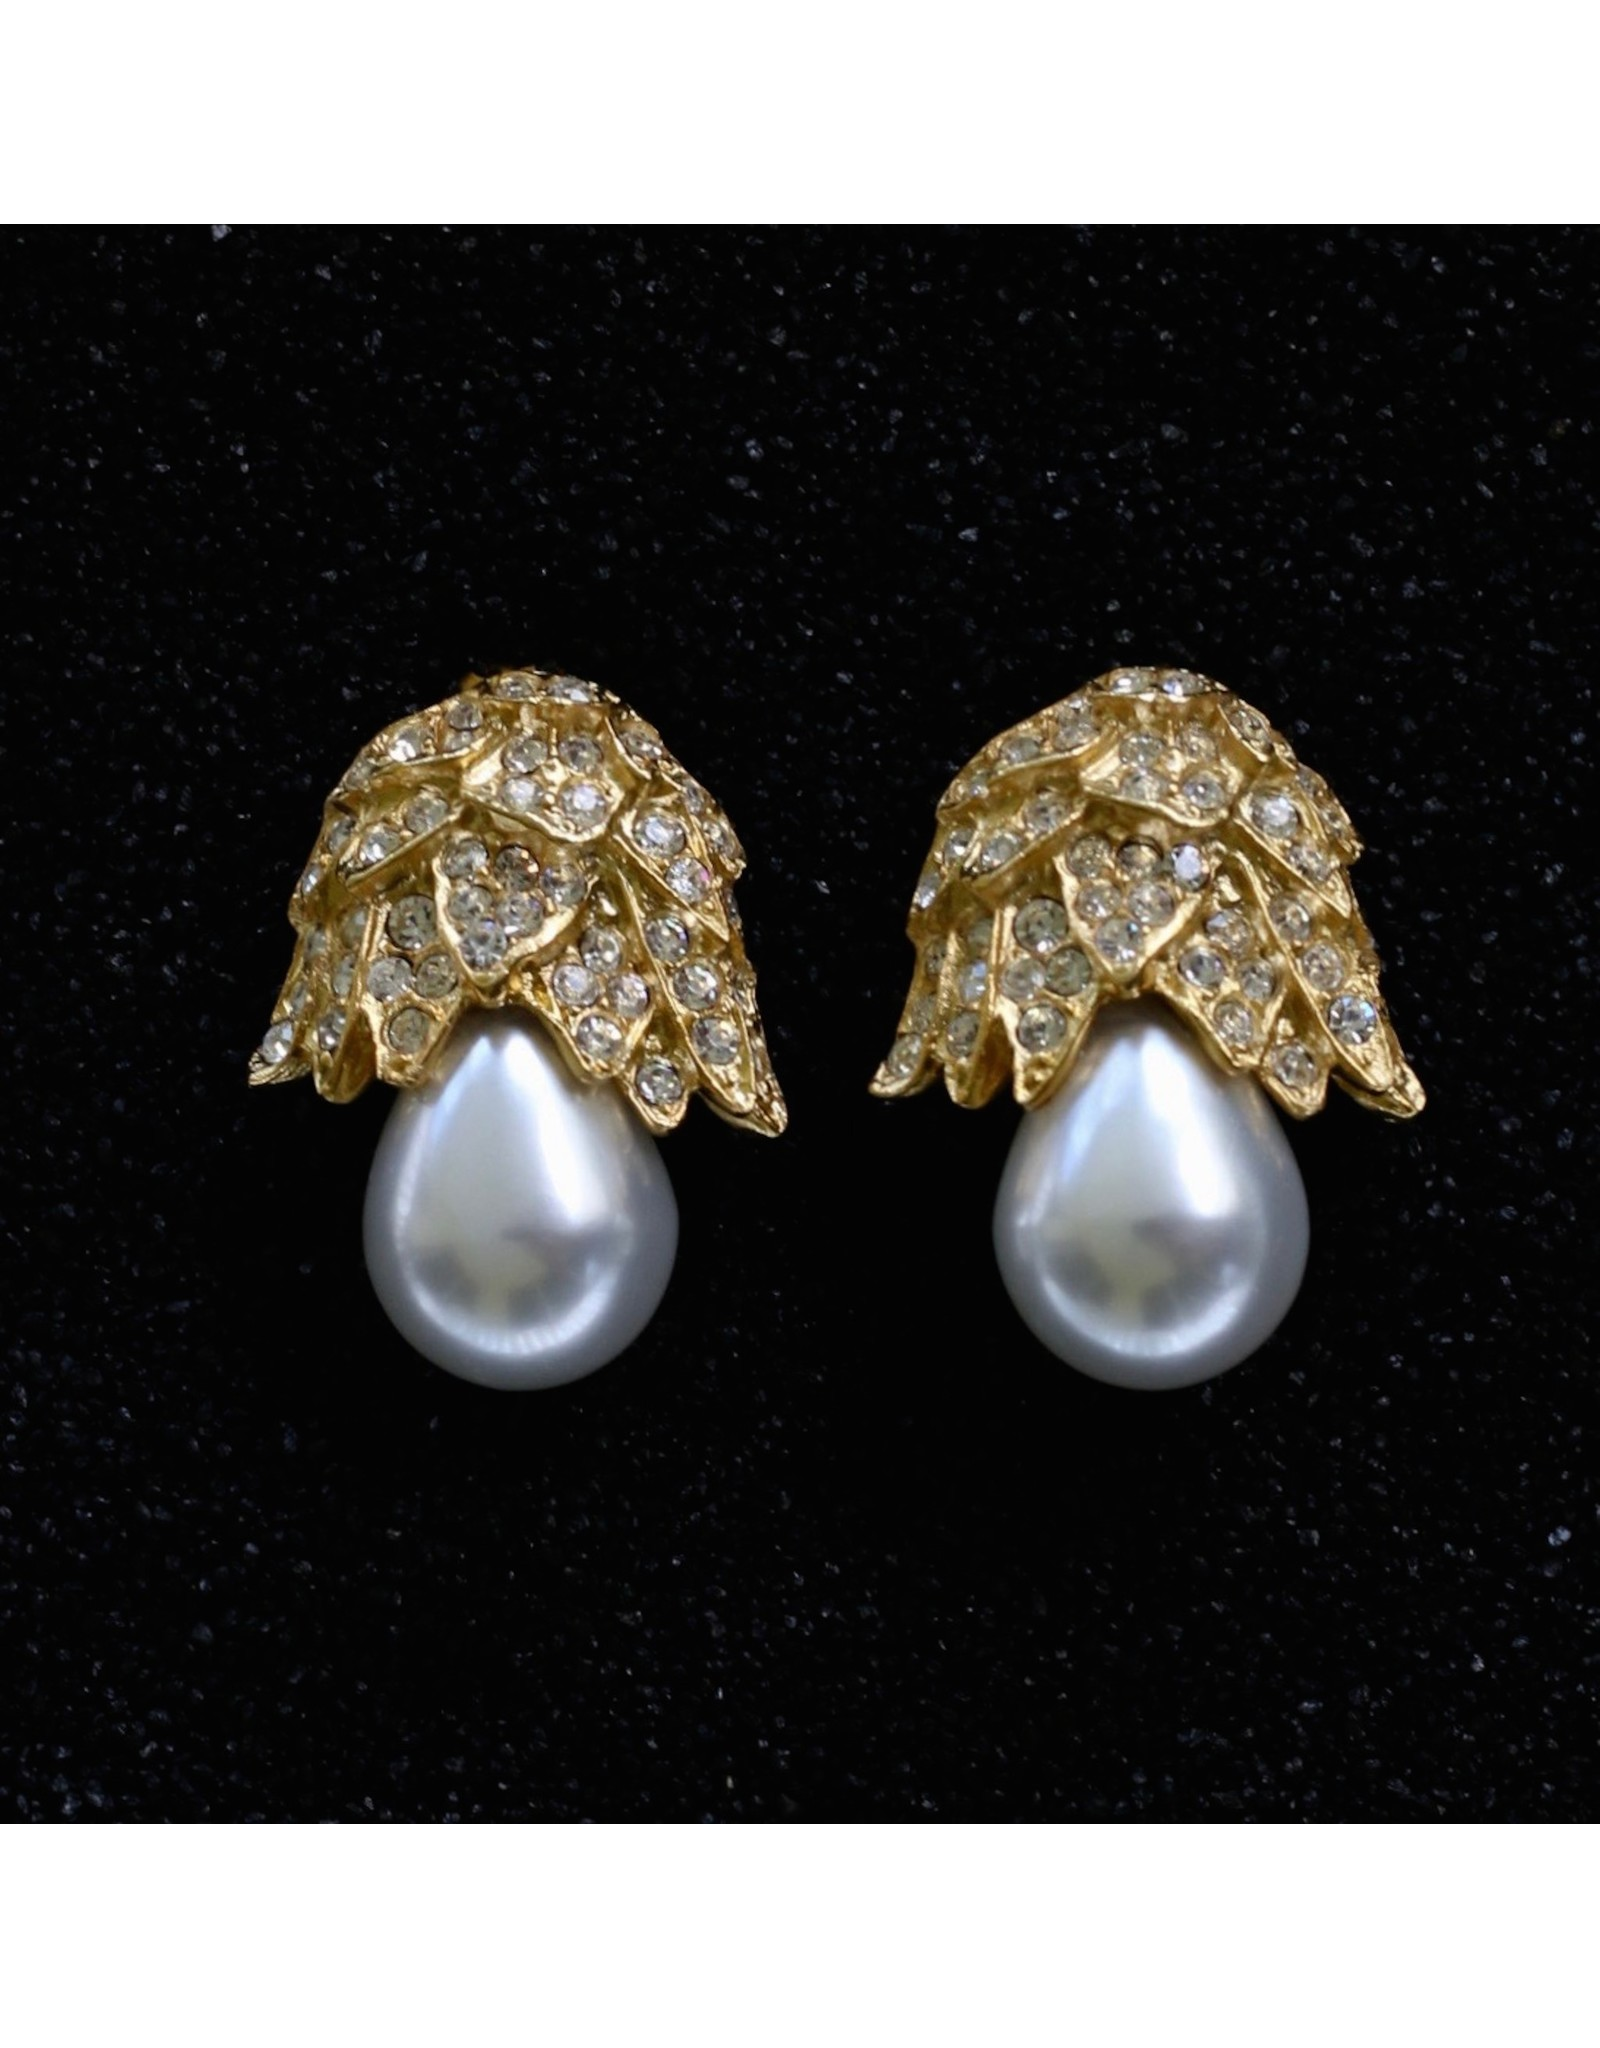 Kenneth Jay Lane Pearl Drop with Gold Pave